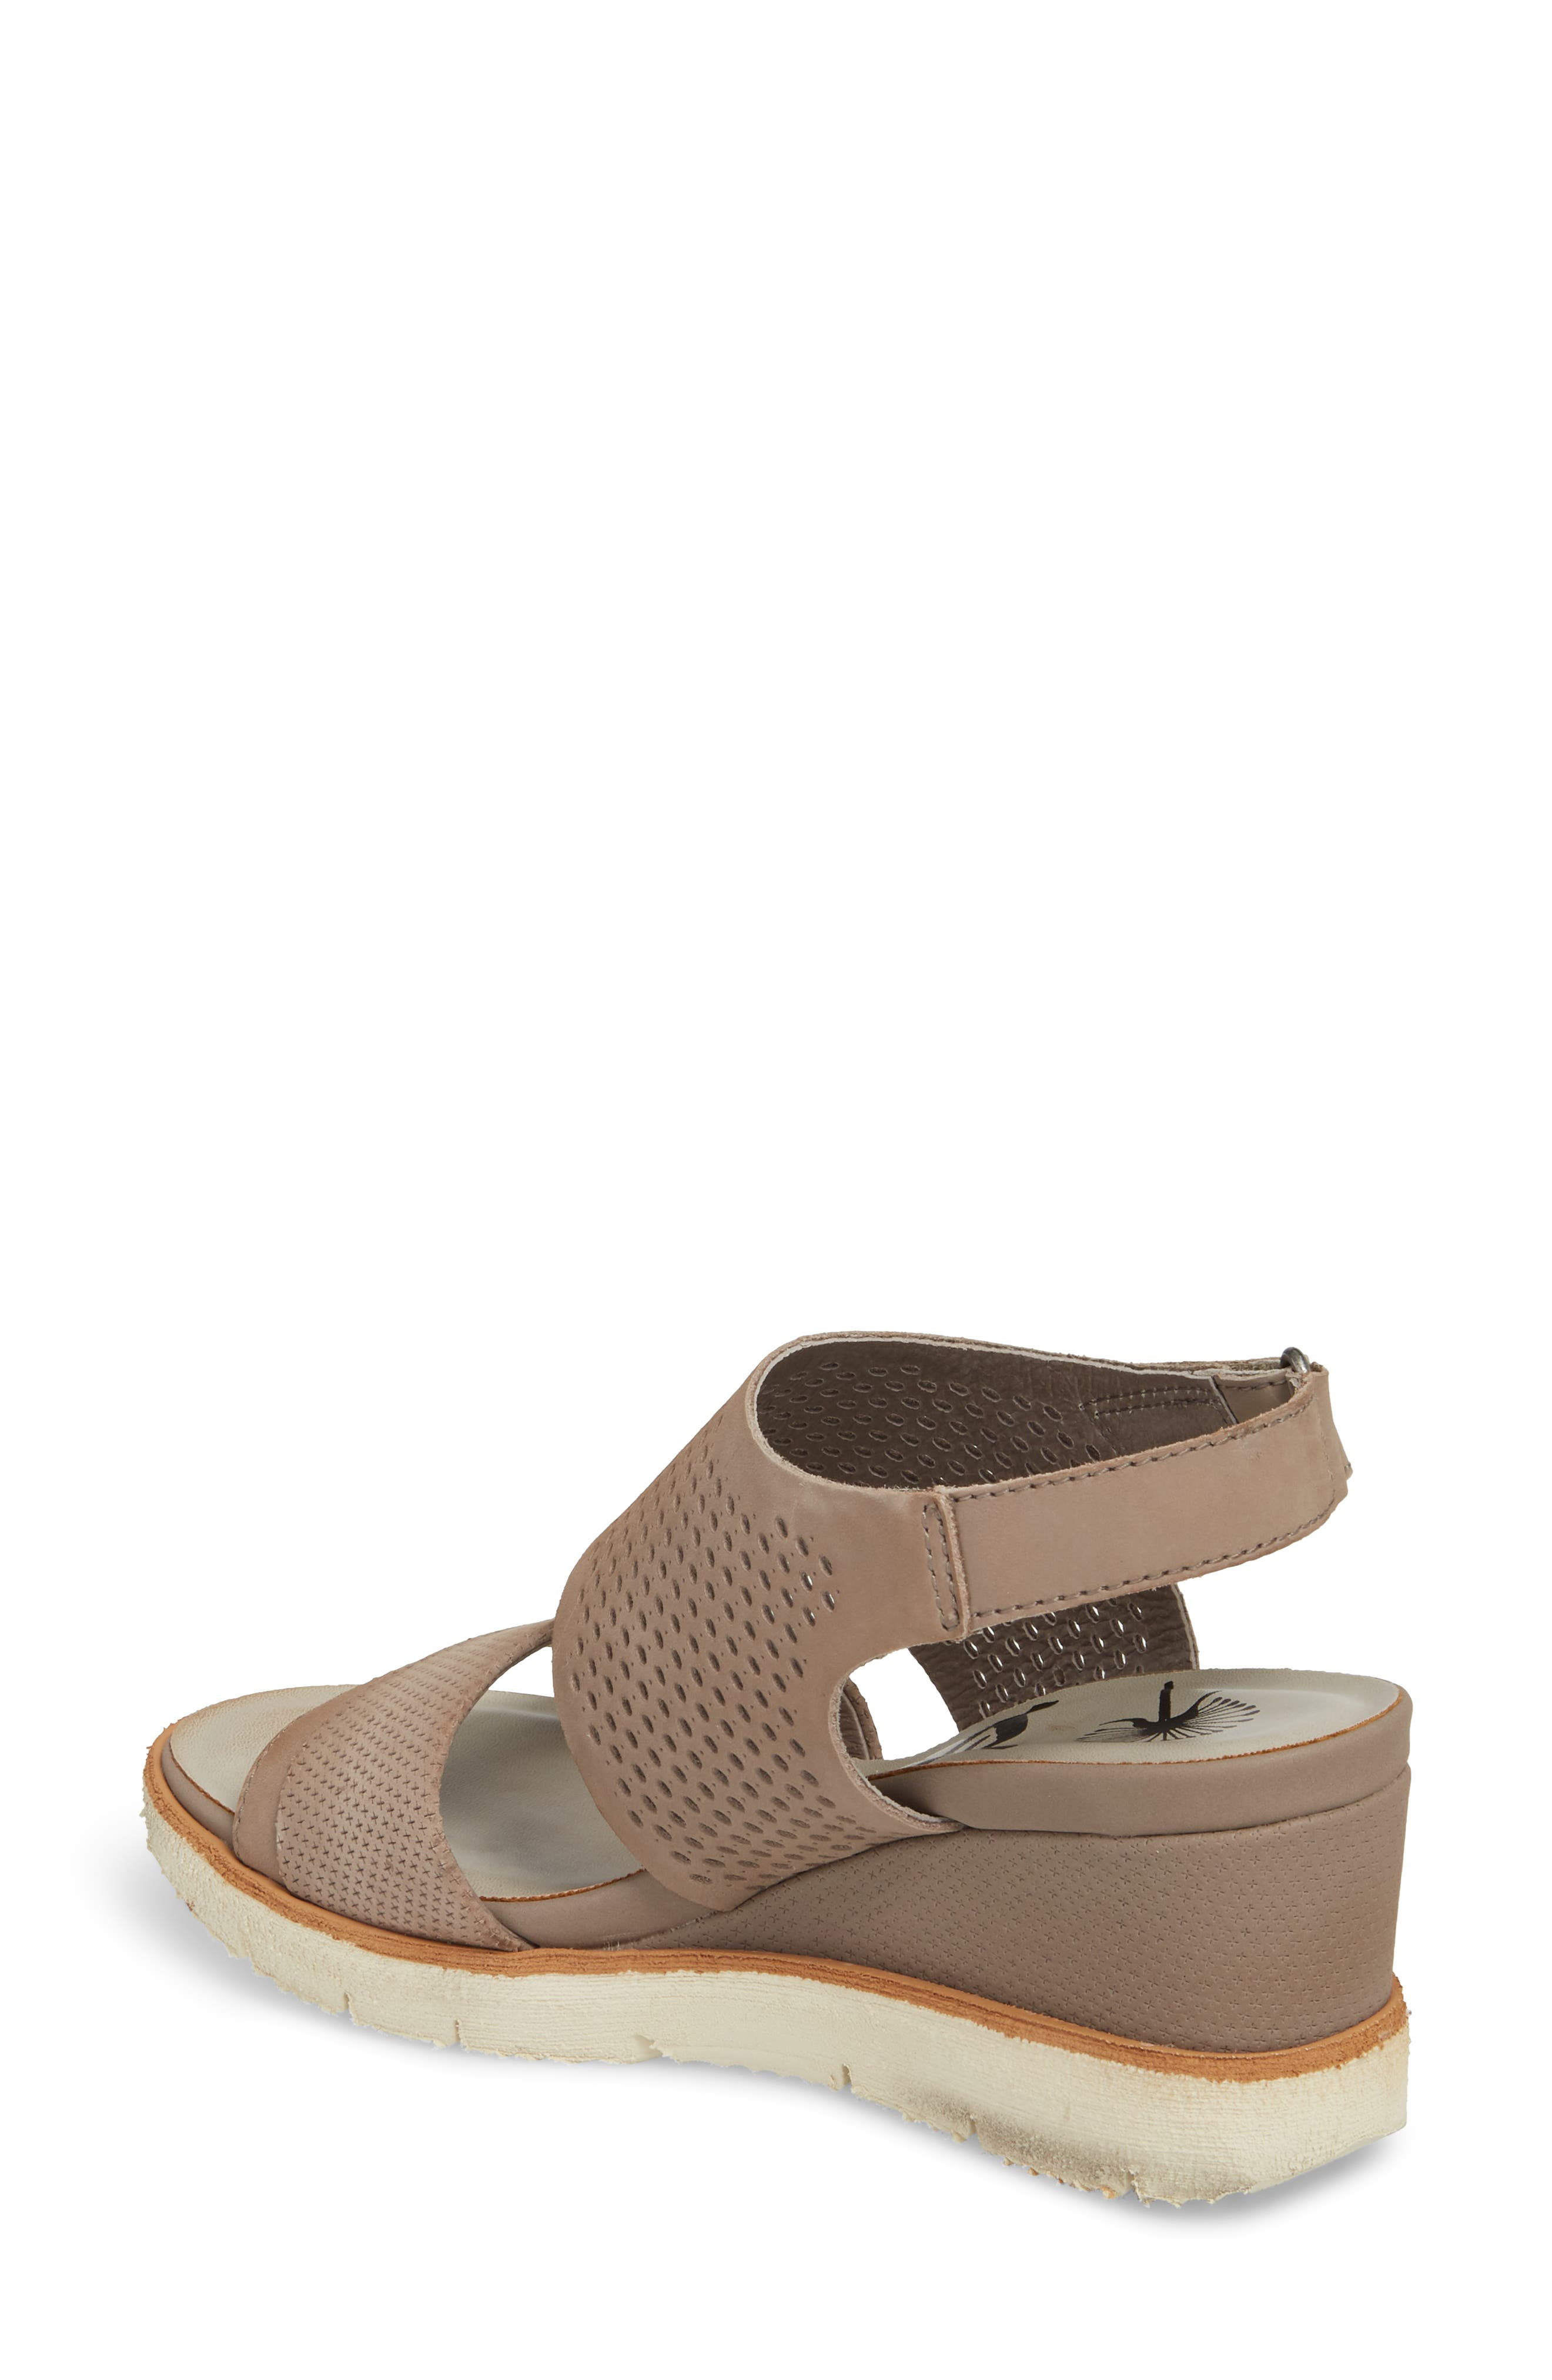 OTBT, Milky Way Wedge Sandal, Alternate thumbnail 2, color, COCOA LEATHER